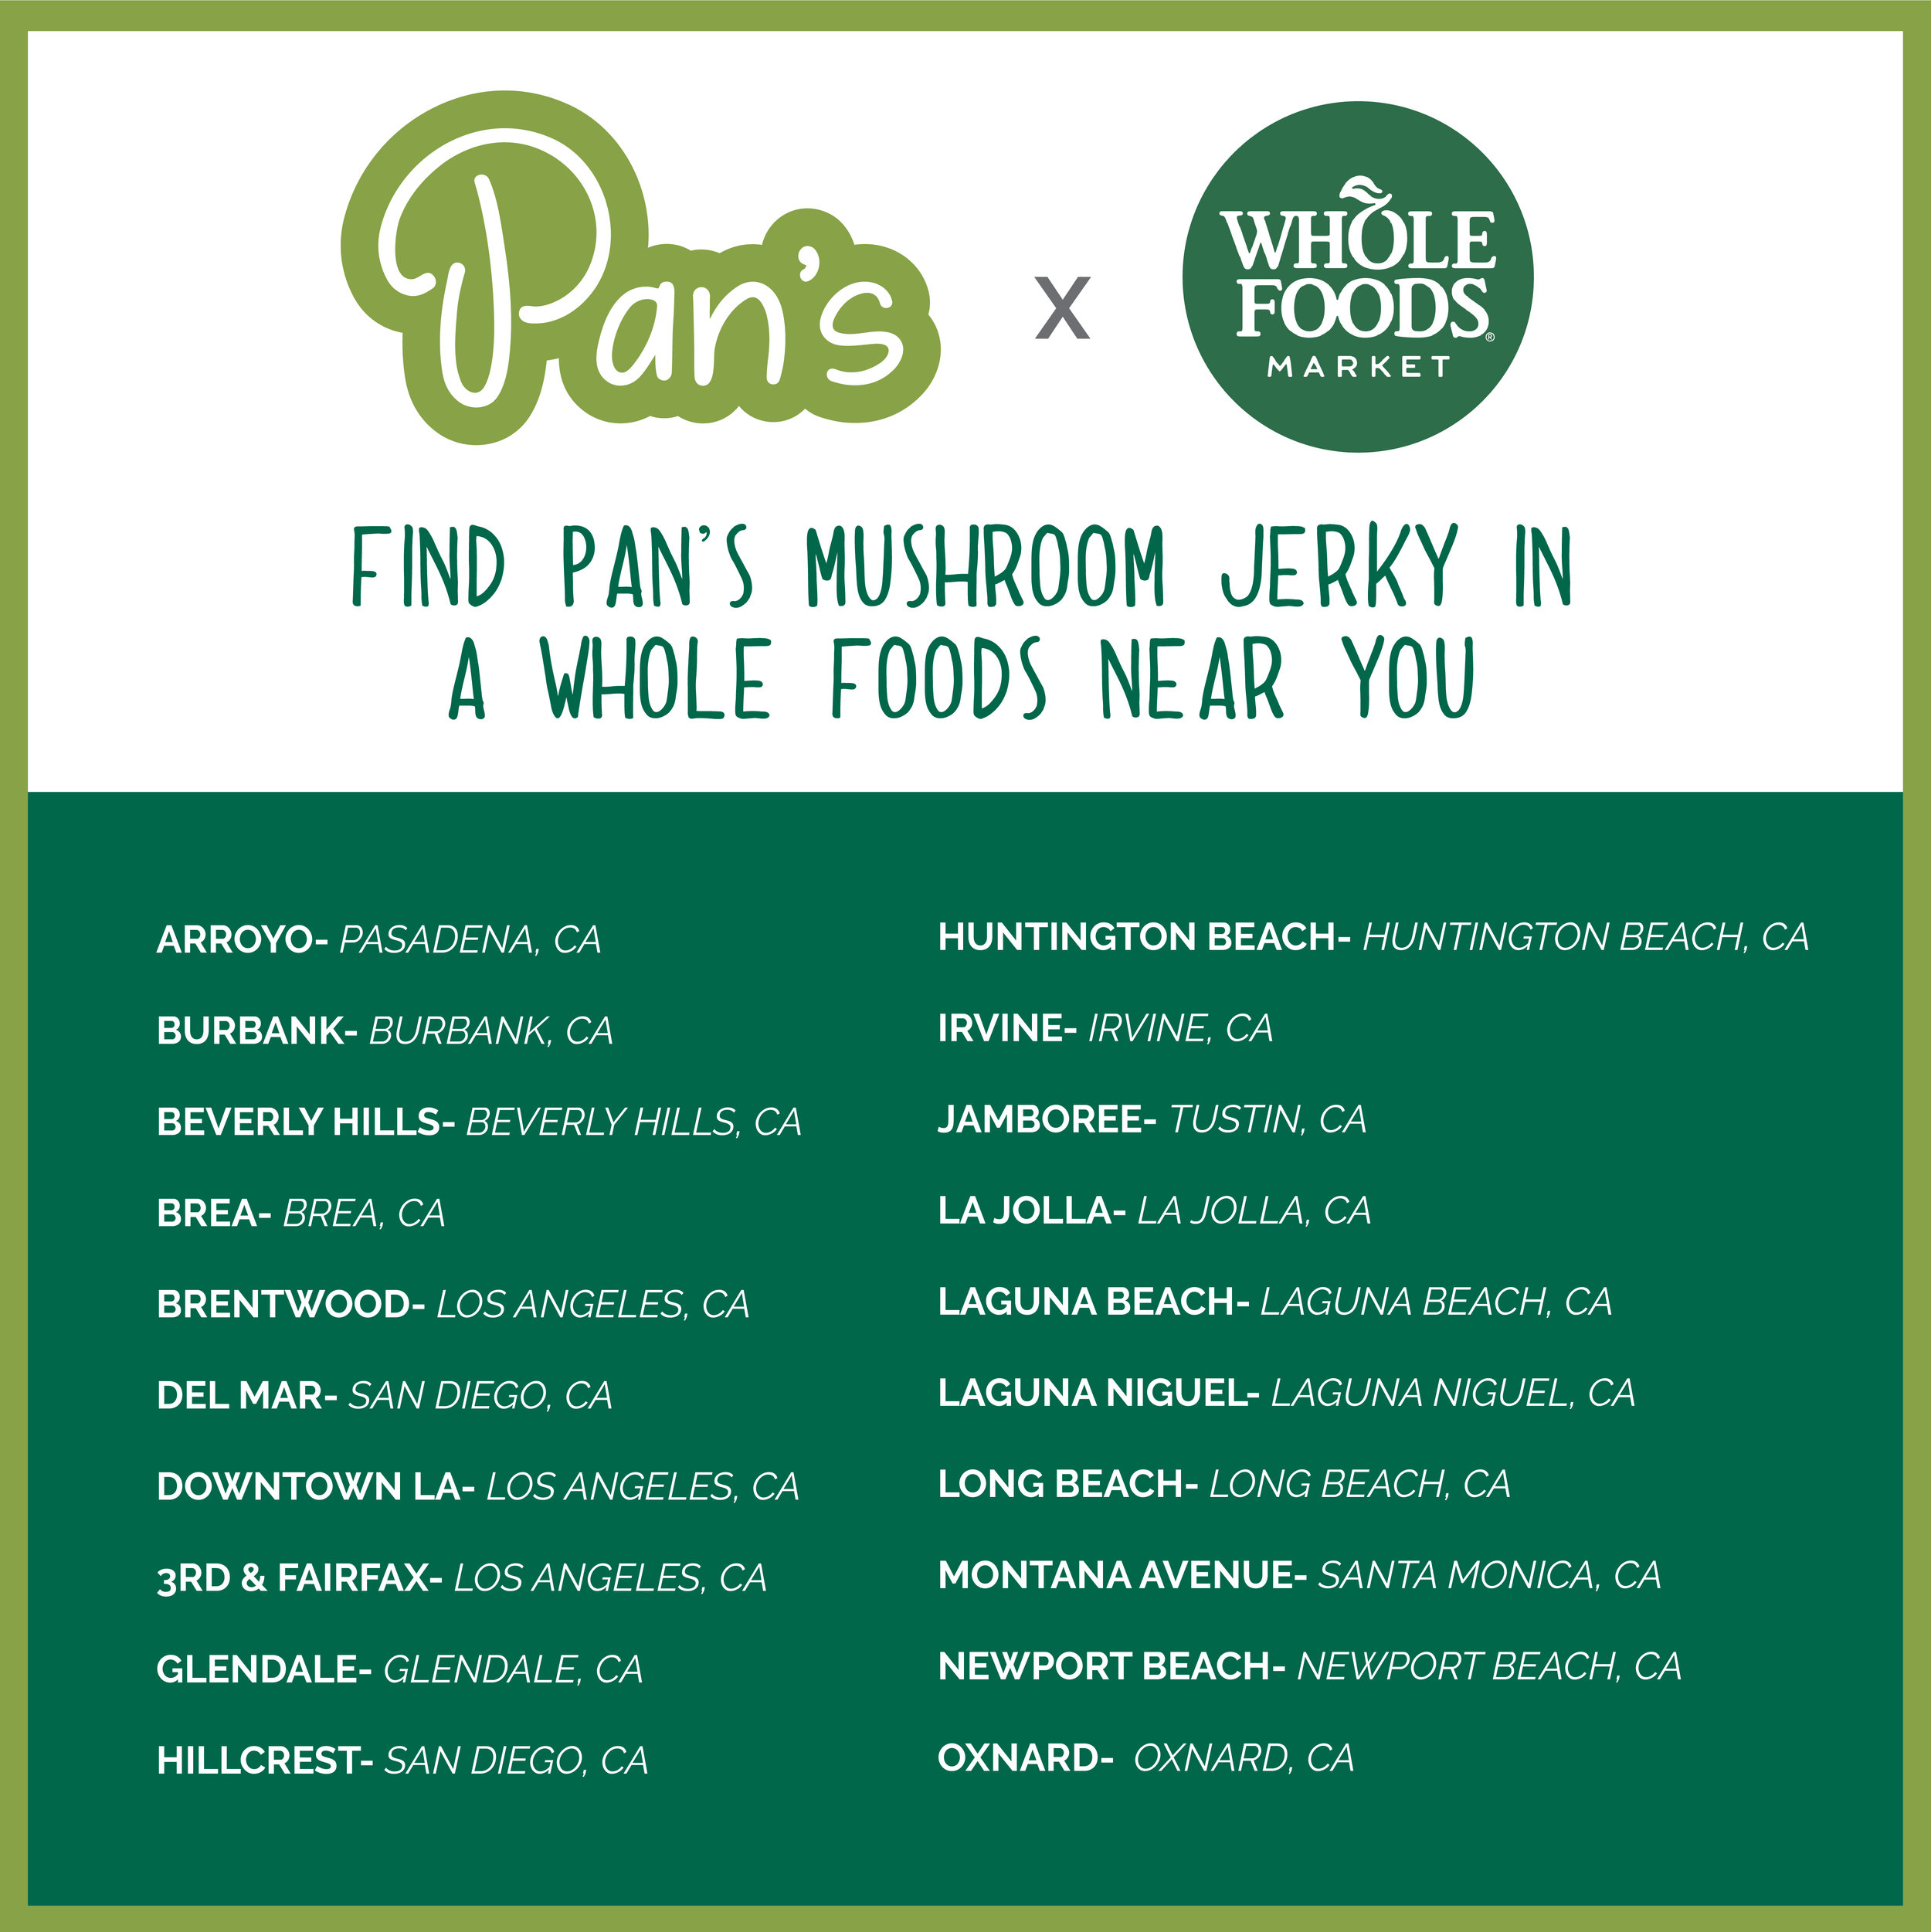 Whole Foods Stores 1.jpg